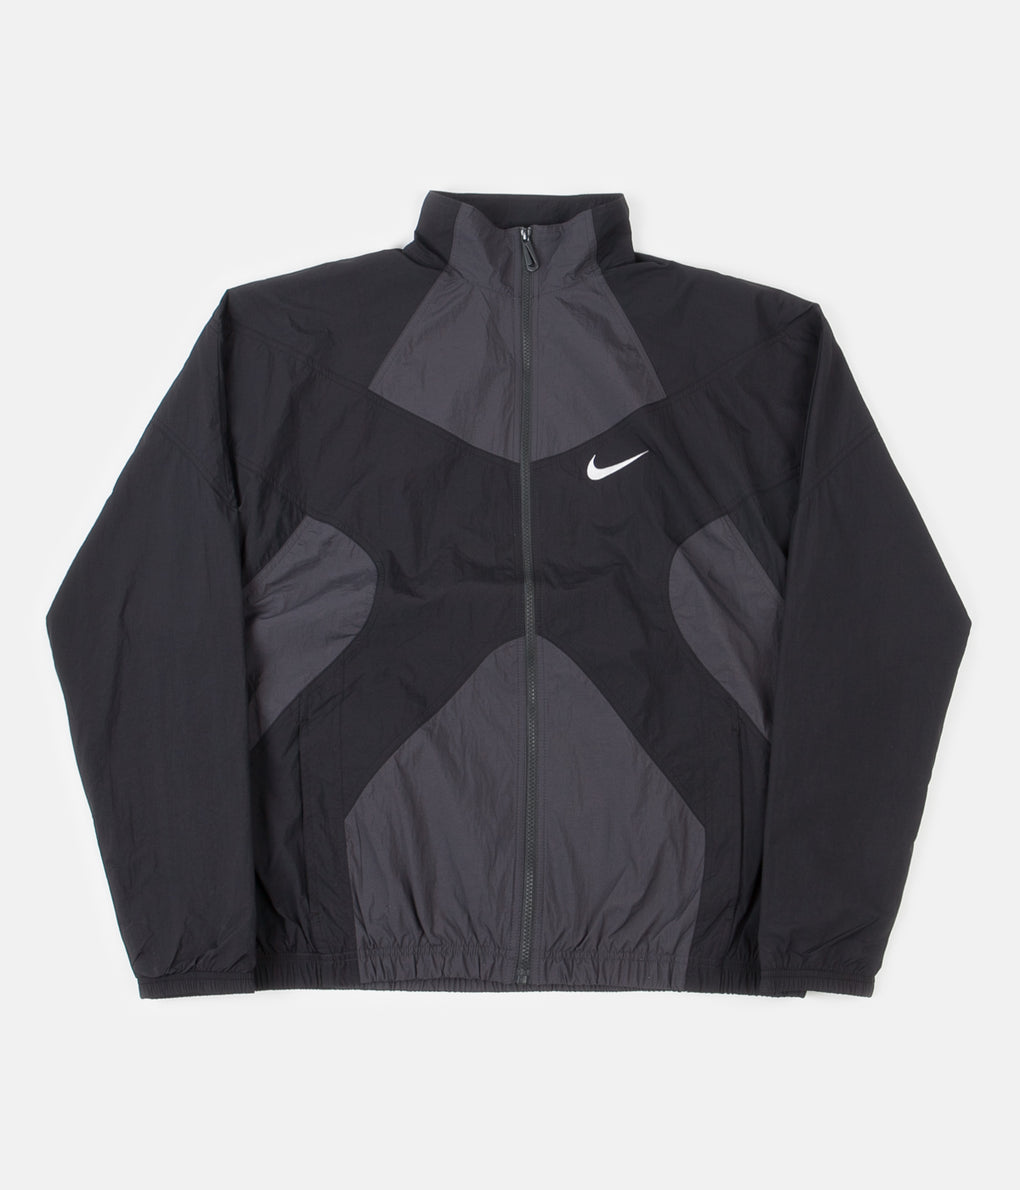 Nike Re-Issue Woven Jacket - Anthracite / Black / Black / White